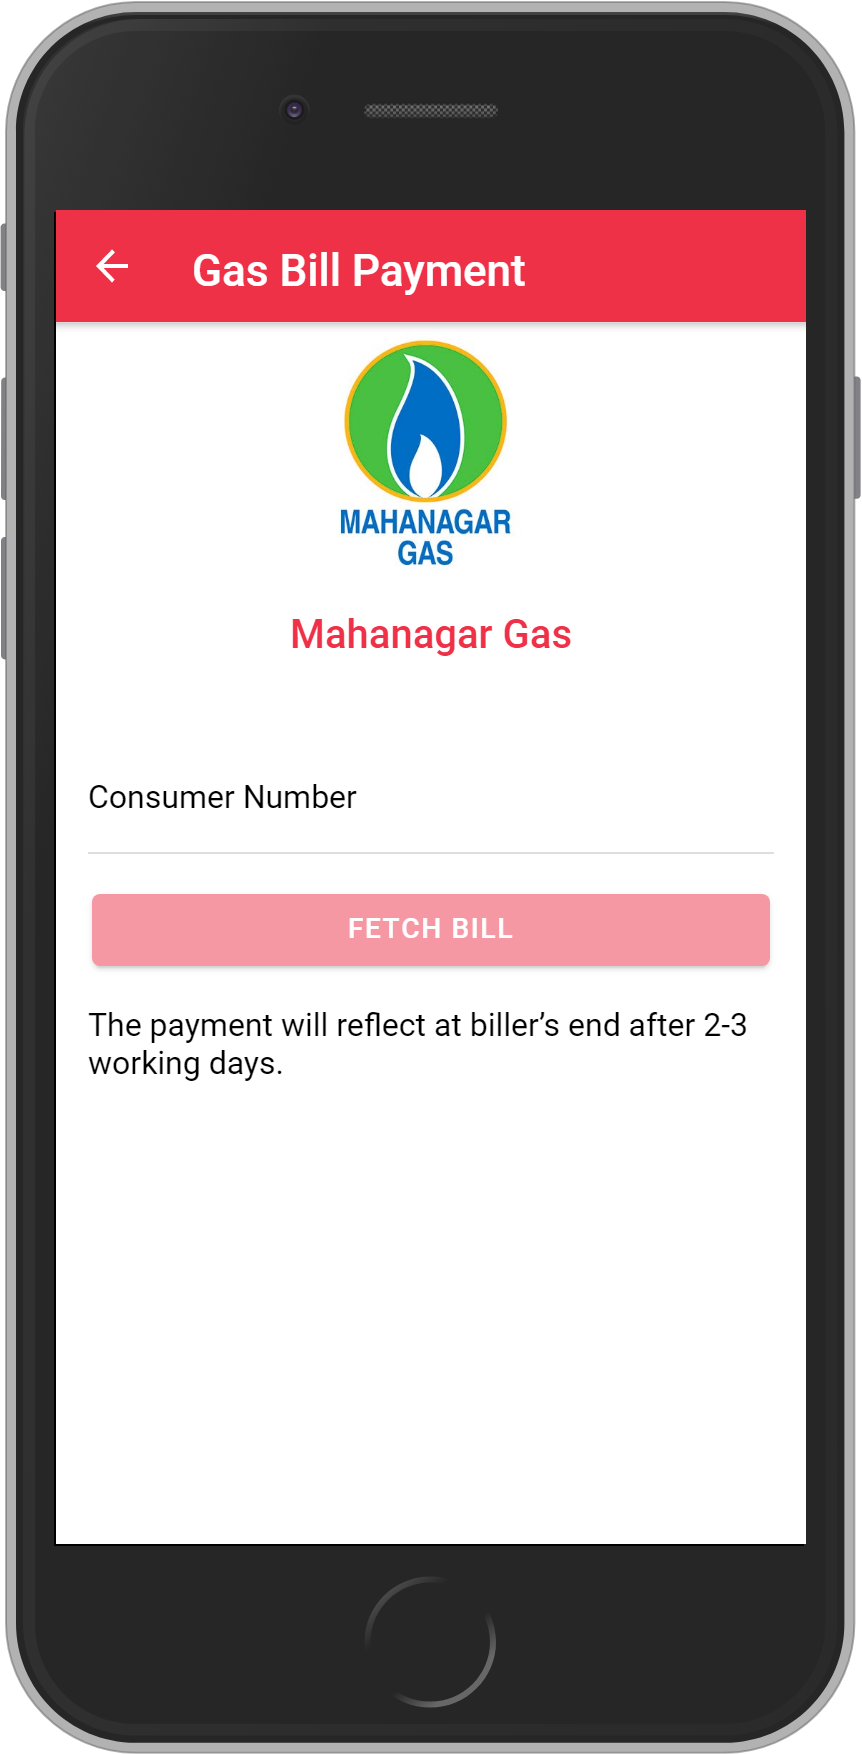 Get UNLIMITED <b>0.1%</b> CASHBACK on Mahanagar Bill Payment.